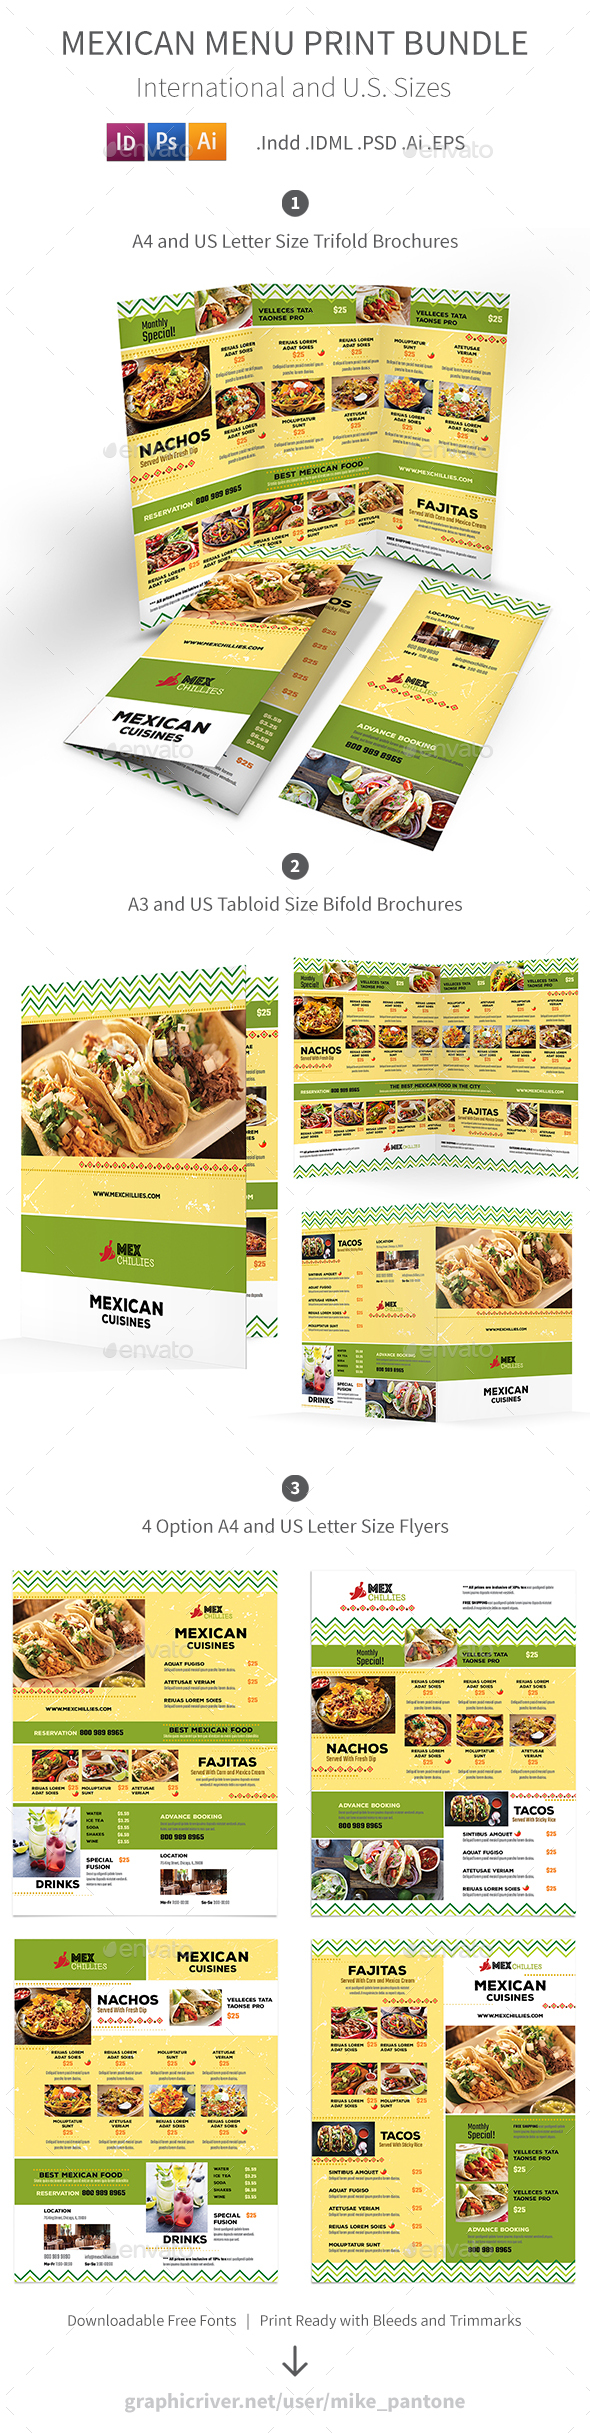 Mexican Restaurant Menu Print Bundle 2 - Food Menus Print Templates